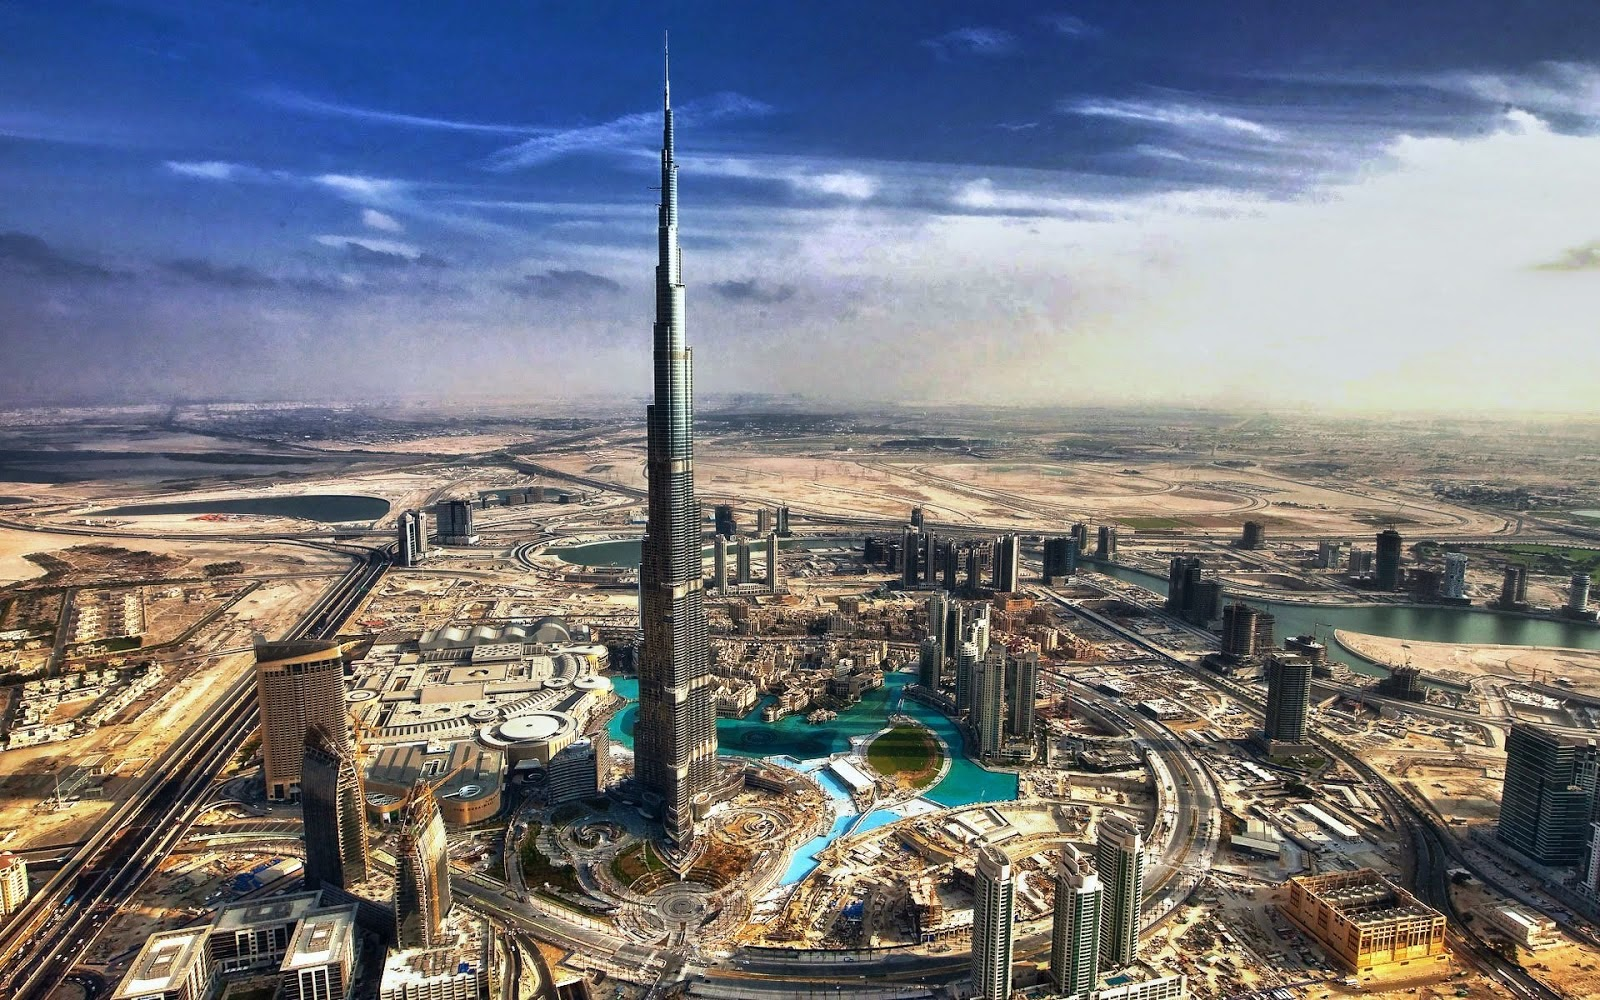 Dubai has come at 32nd position in the list of world's least stressful cities.